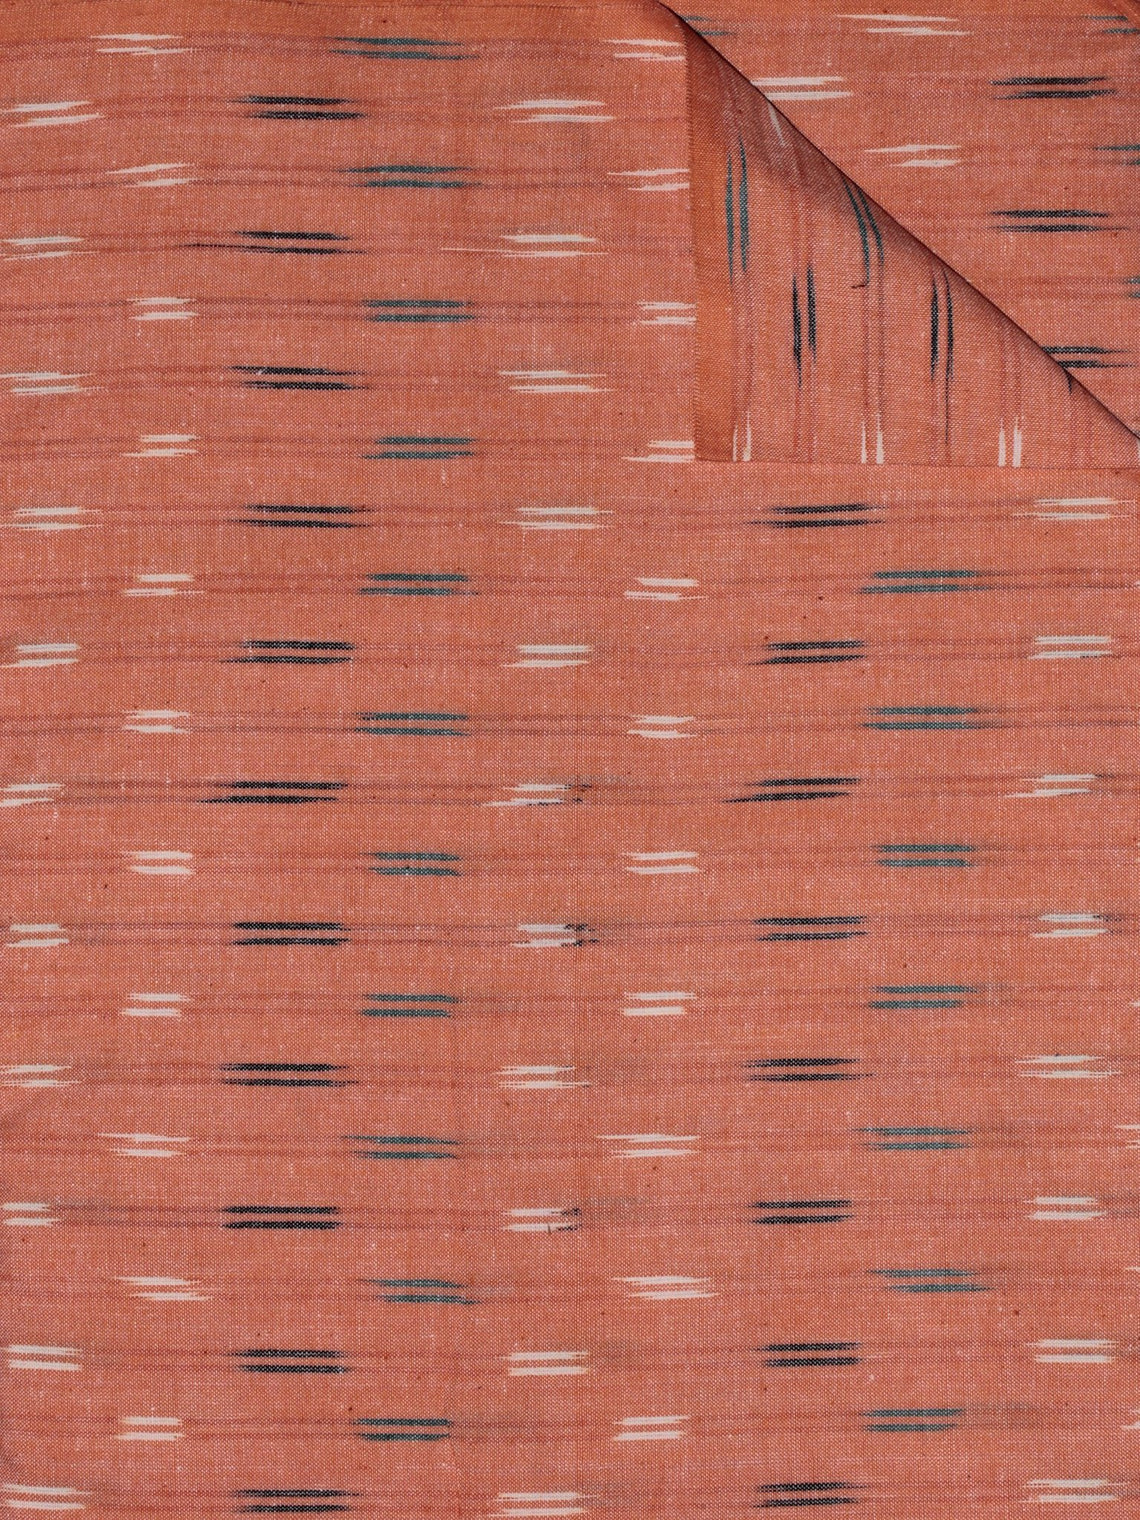 Peach Ivory Green Black Pochampally Hand Weaved Ikat Fabric Per Meter - F0916729